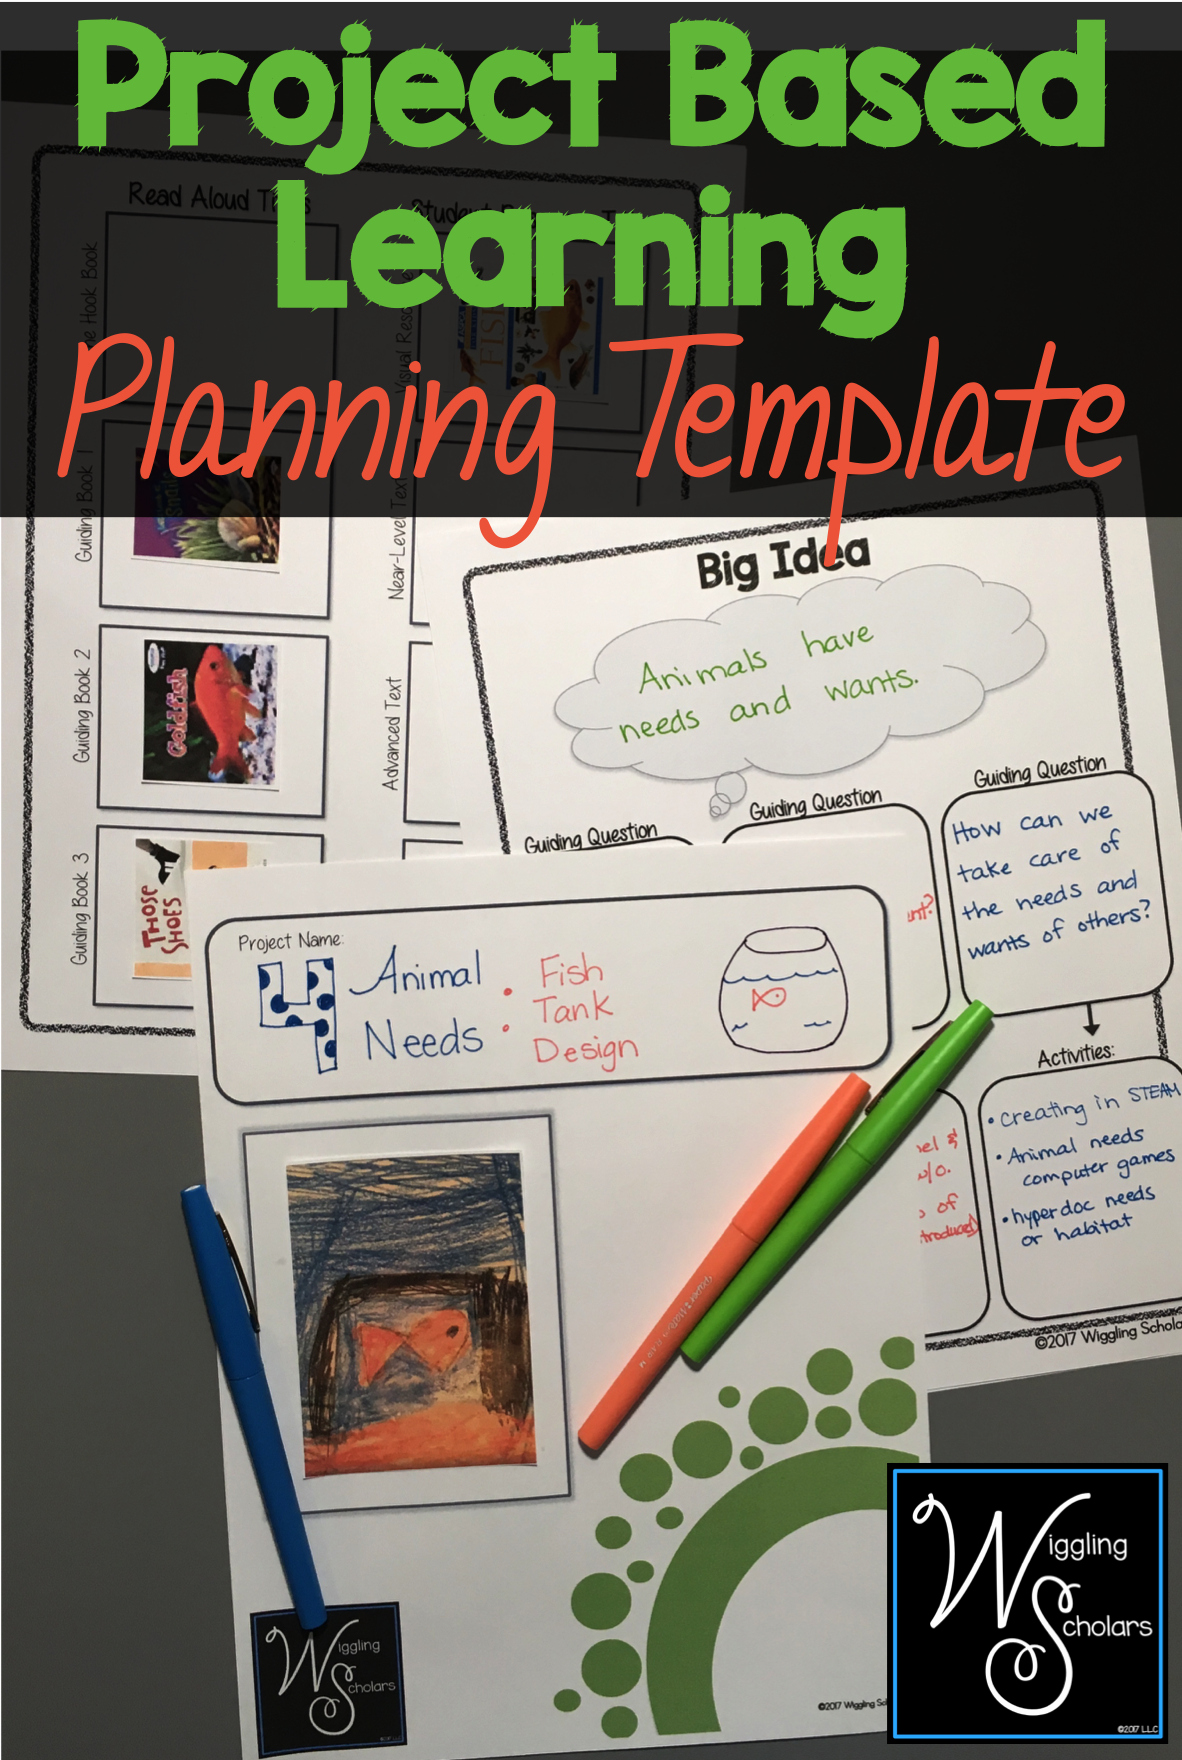 Pbl Lesson Plan Template Unique This Project Based Learning Pbl Template Helps You with